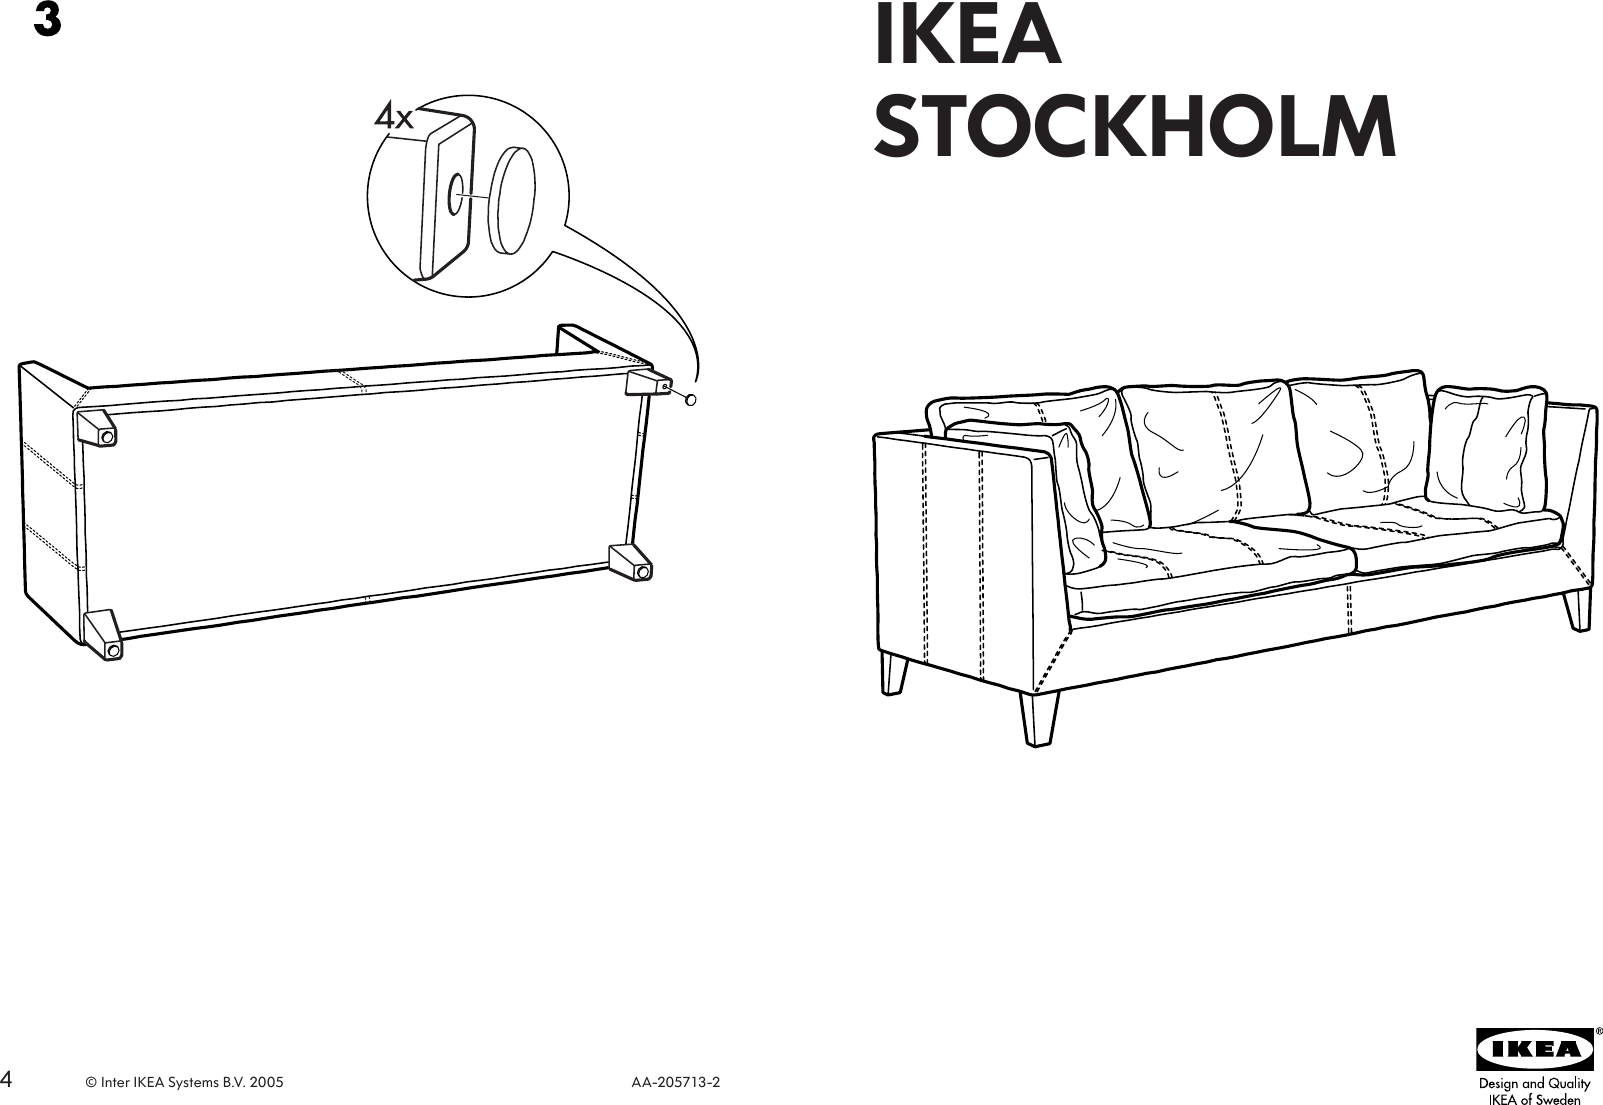 Pleasant Ikea Stockholm Leather Sofa Frame Assembly Instruction Interior Design Ideas Ghosoteloinfo